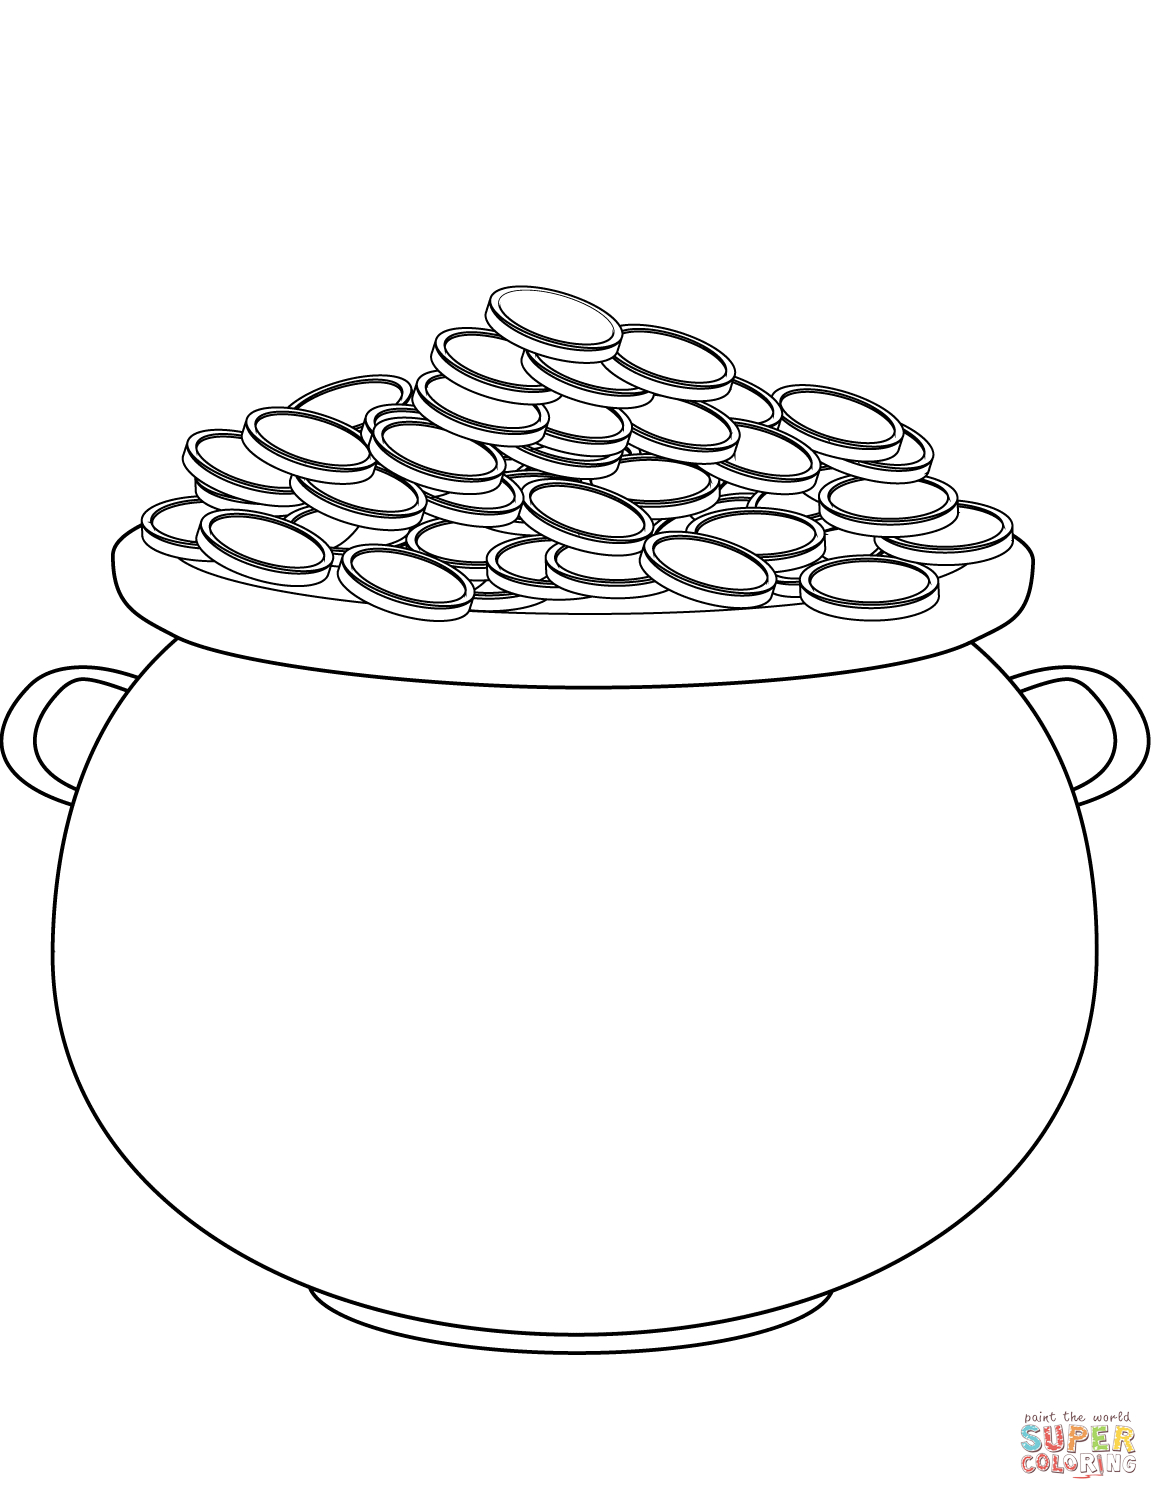 Saint Patrick's Day Pot Of Gold Coloring Page | Free Printable - Free Printable Pot Of Gold Coloring Pages